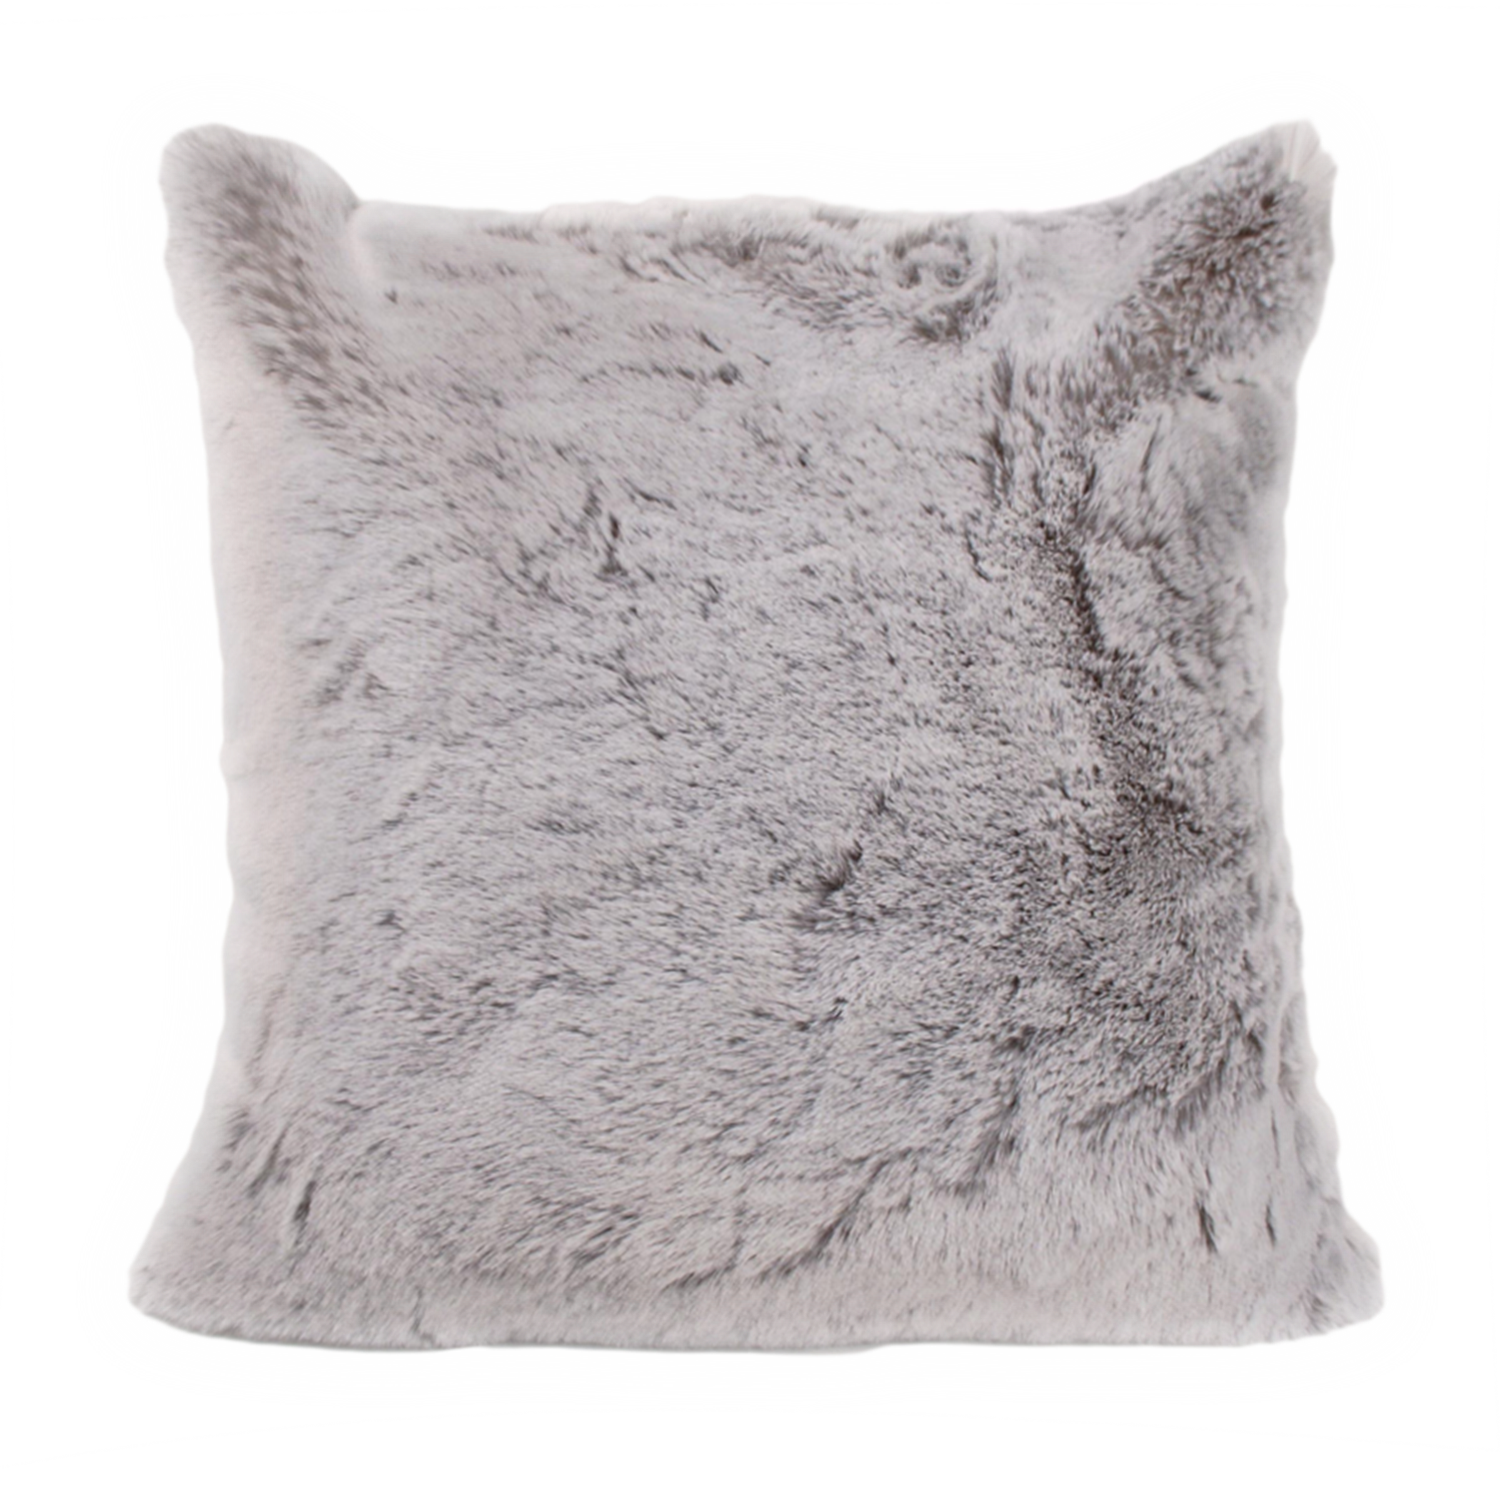 White fur rug png. Between the sheets wool